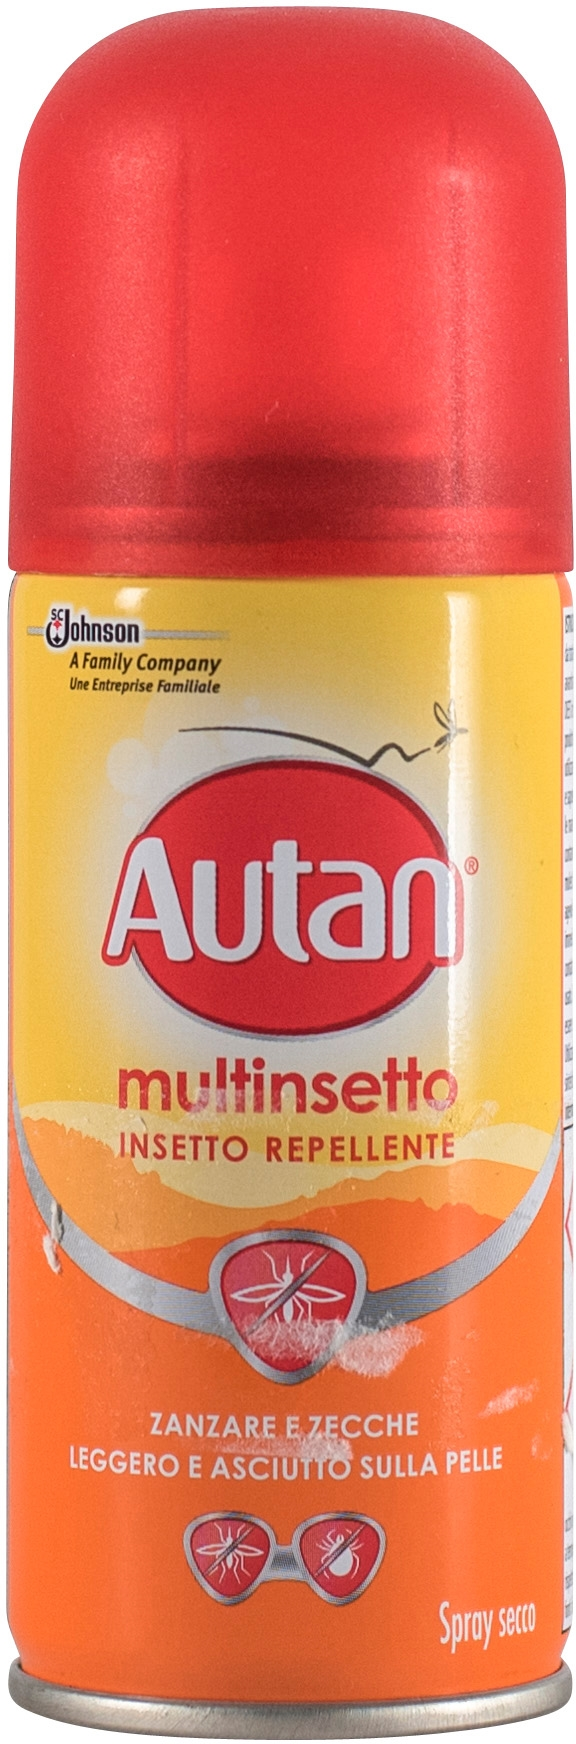 MULTINSETTO -INSETTO REPELLENTE - SPRAY SECCO